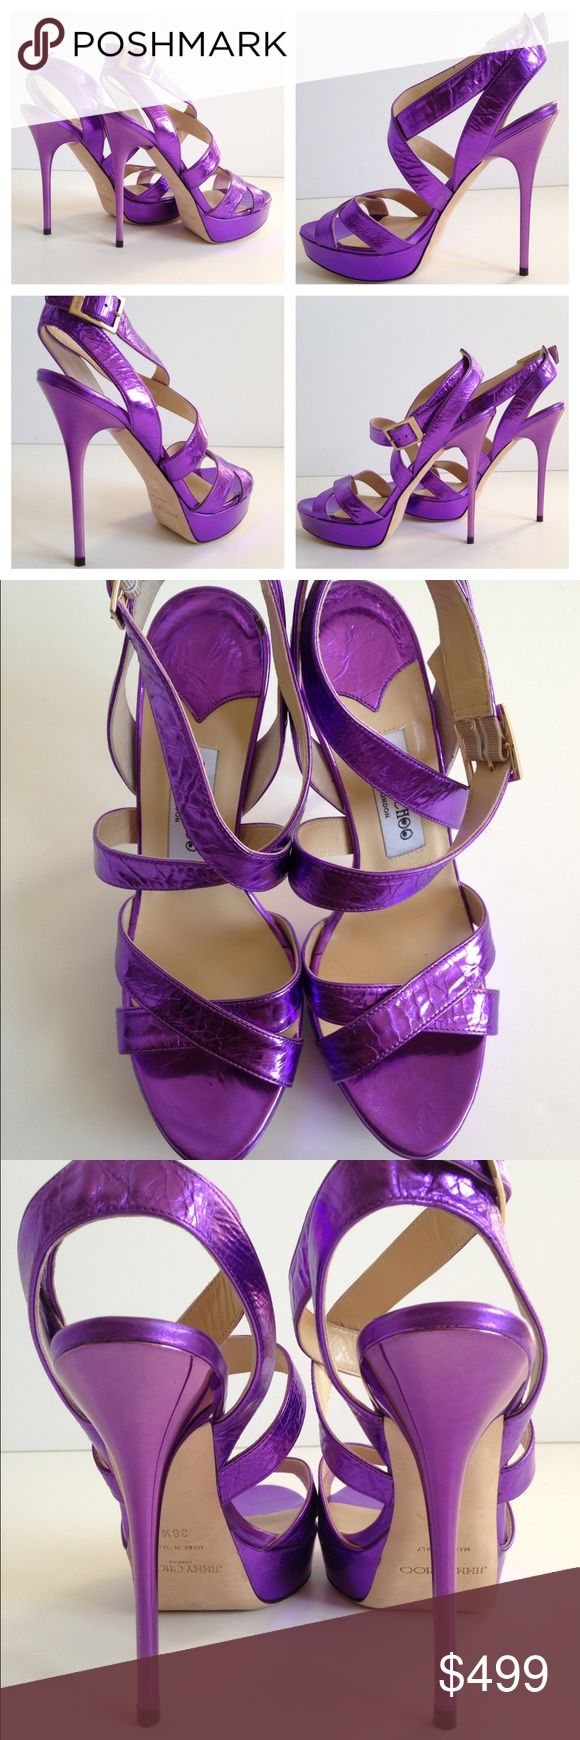 """Jimmy Choo Vamp Purple Sandal Jimmy Choo Vamp Leather Platform Sandals. Purple leather platform Sandals. Crackle leather covered heel and Platform. Covered heel measures 5"""" (120 mm). Platform 1"""" (20 mm). Gold-toned logo buckle on the outside. Rounded cap. Leather upper. Leather in-sole and sole. Made in Italy. MSRP $850. Condition: floor/display item...in excellent condition!!!...purchased from a high end fifth avenue store... Blackline on the inside label done by the department store to…"""